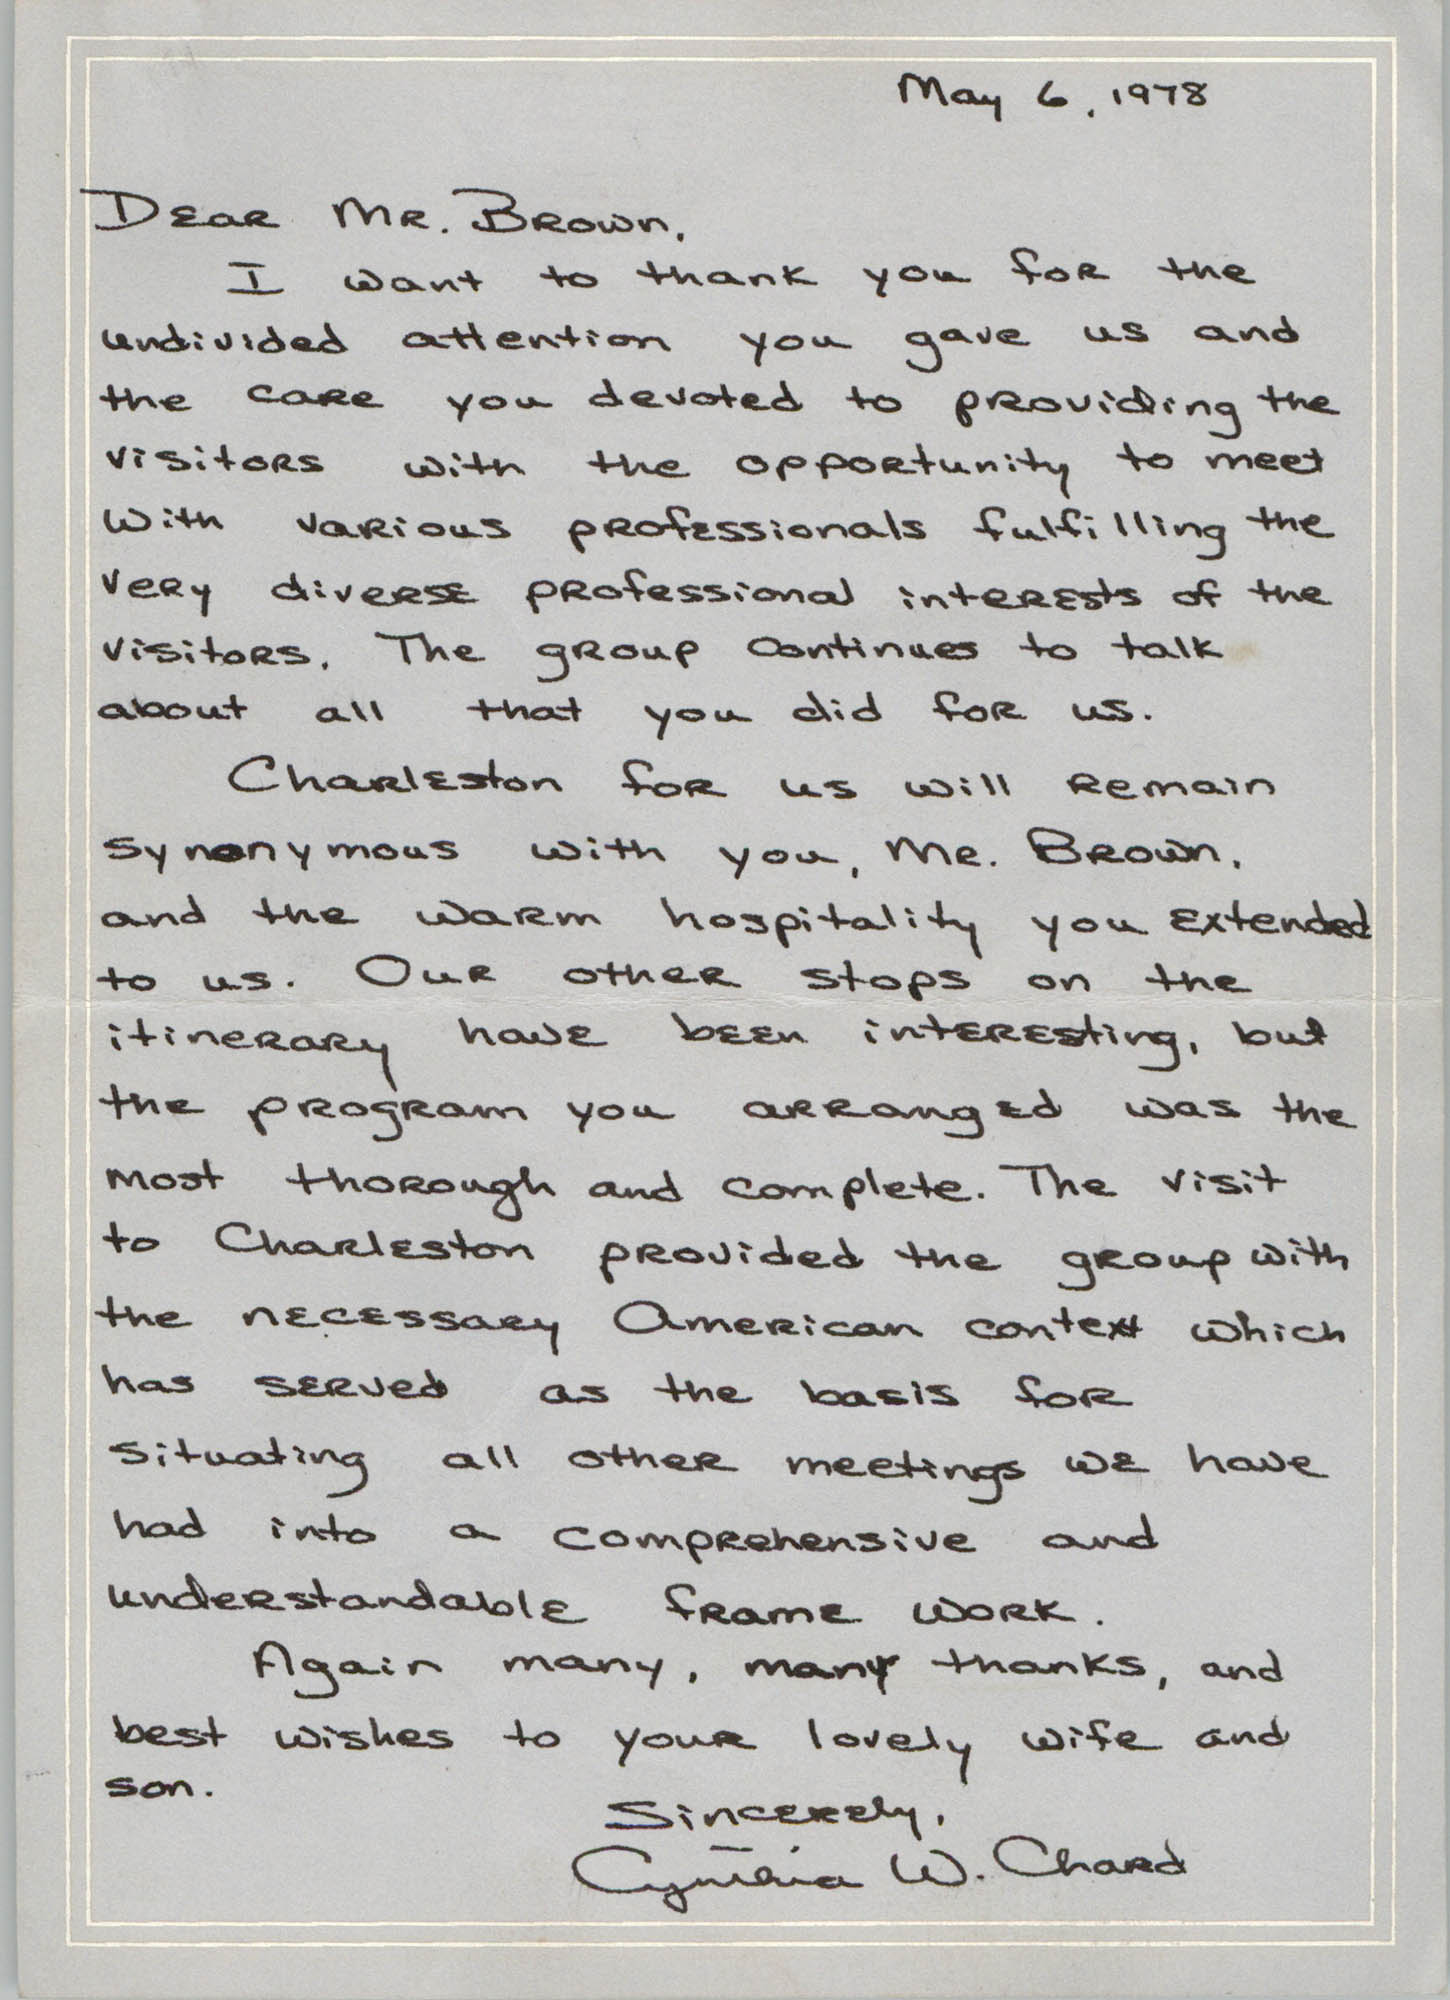 Letter from Cynthia W. Chard to J. Arthur Brown, May 6, 1978